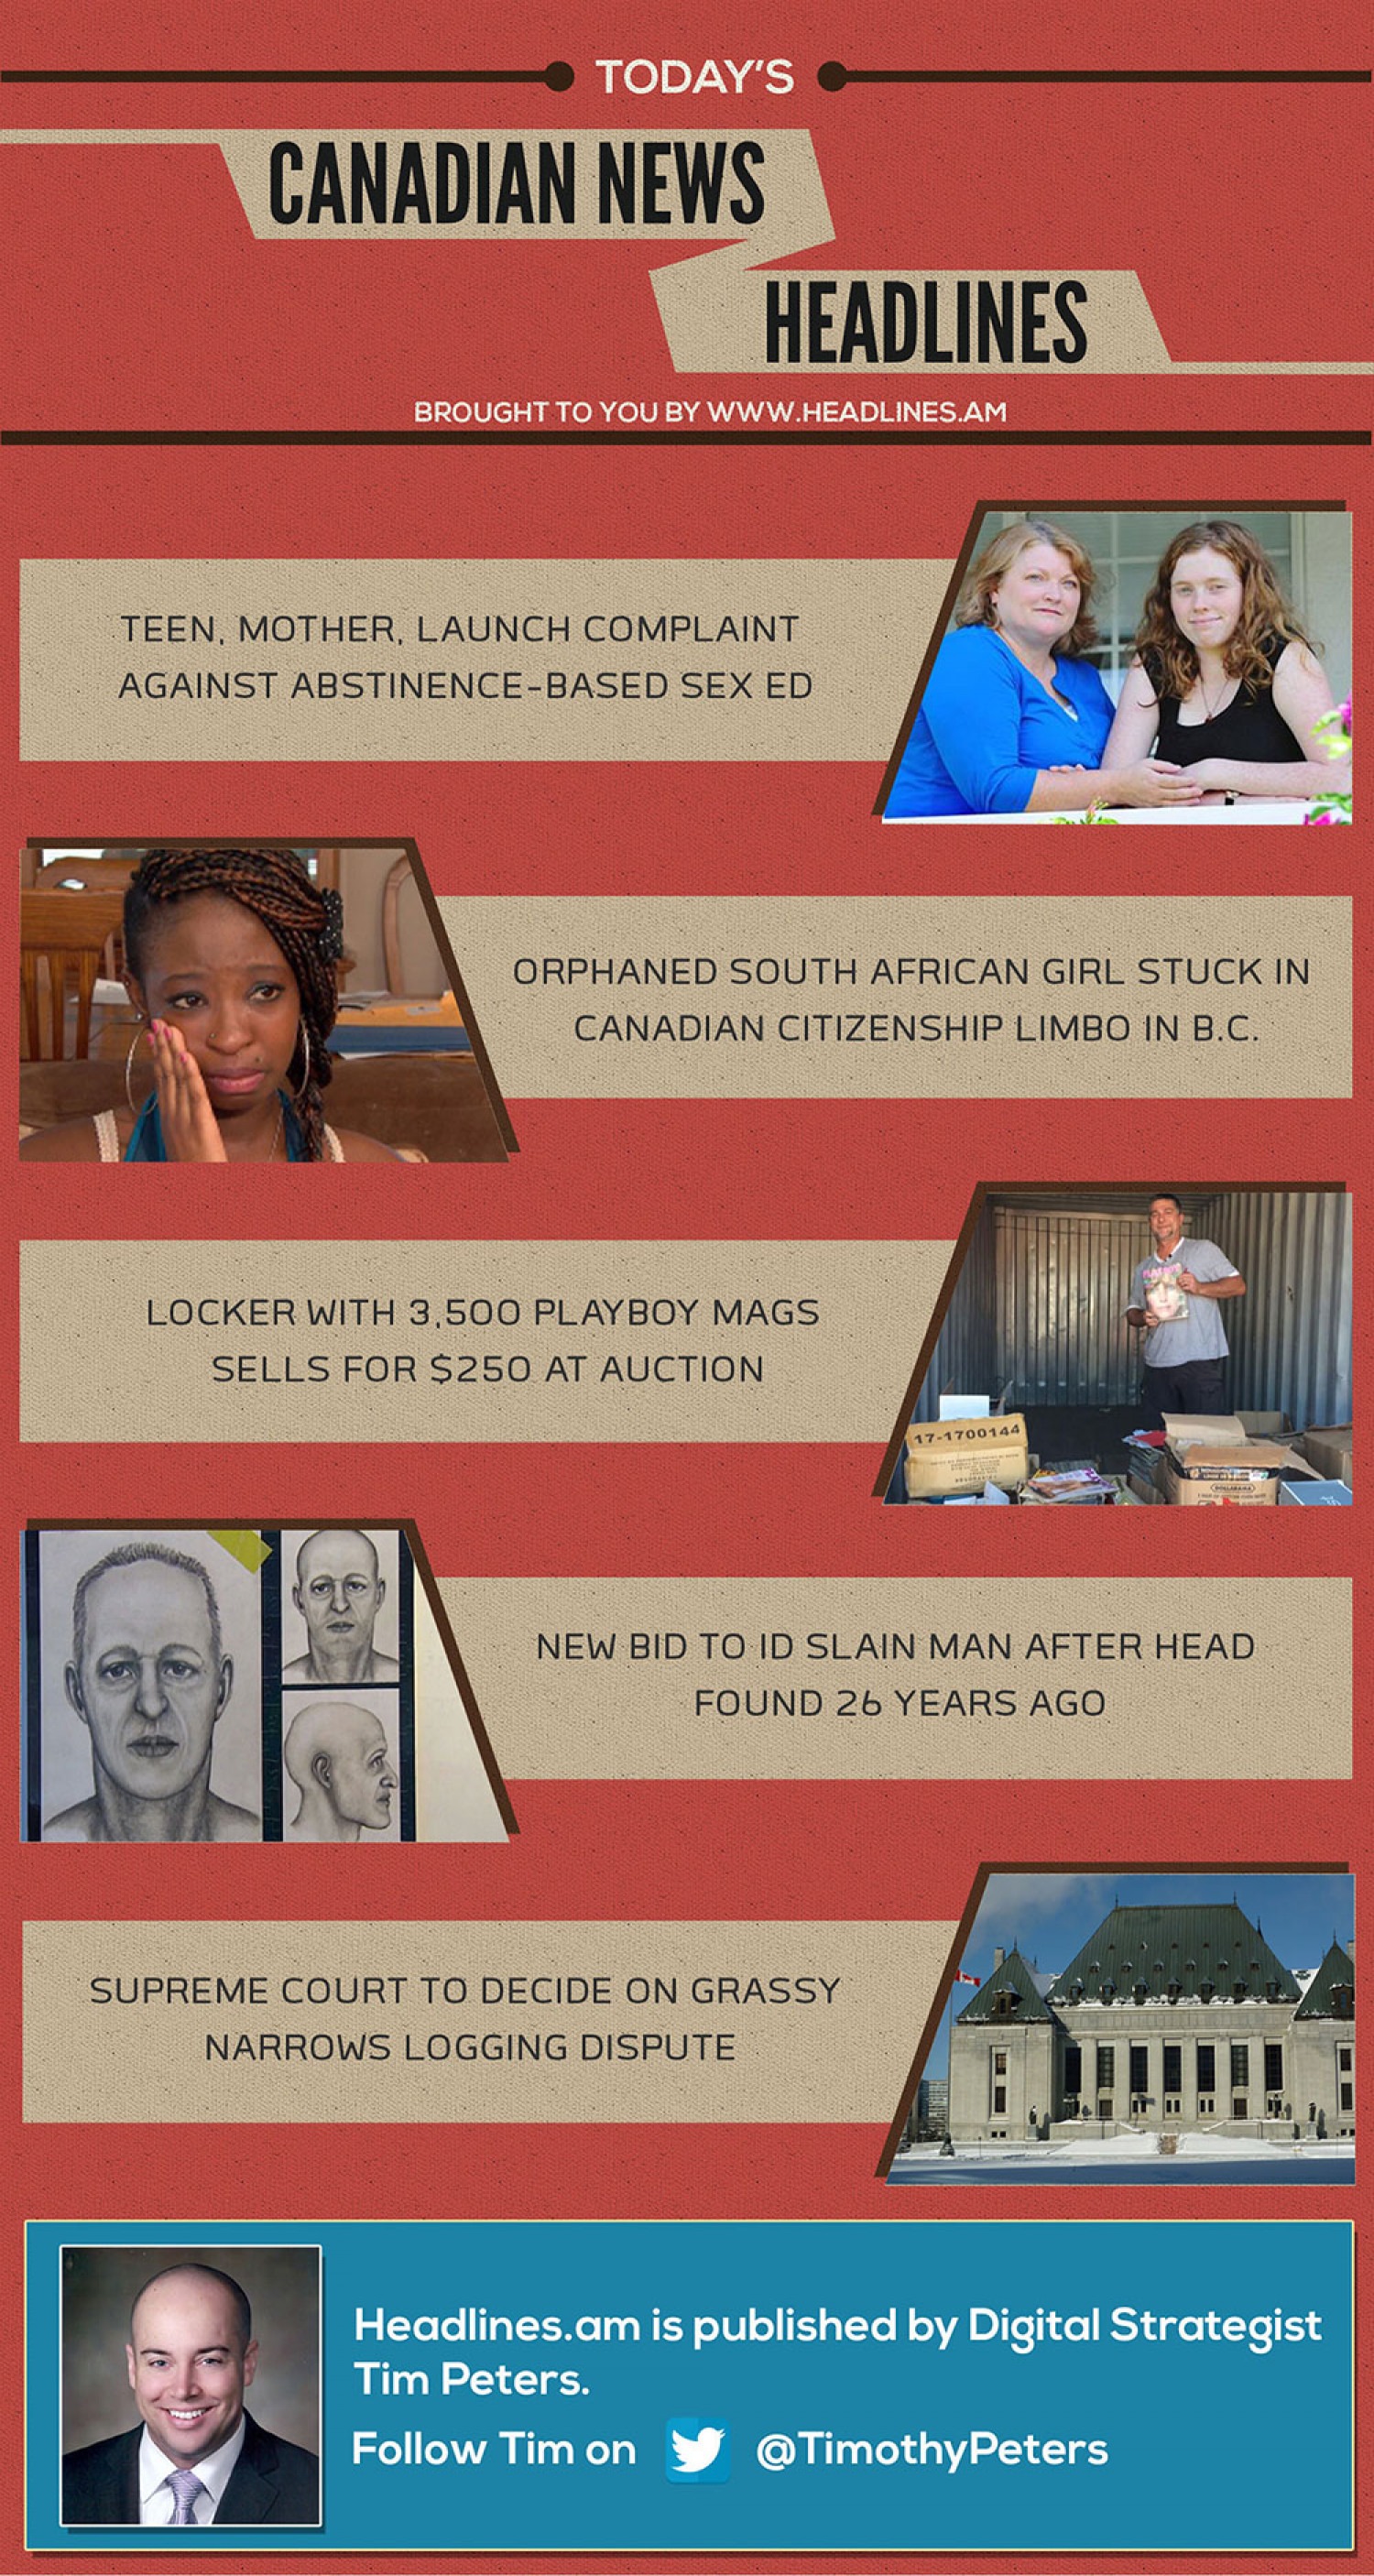 CANADIAN NEWS HEADLINES - July 11, 2014 Infographic